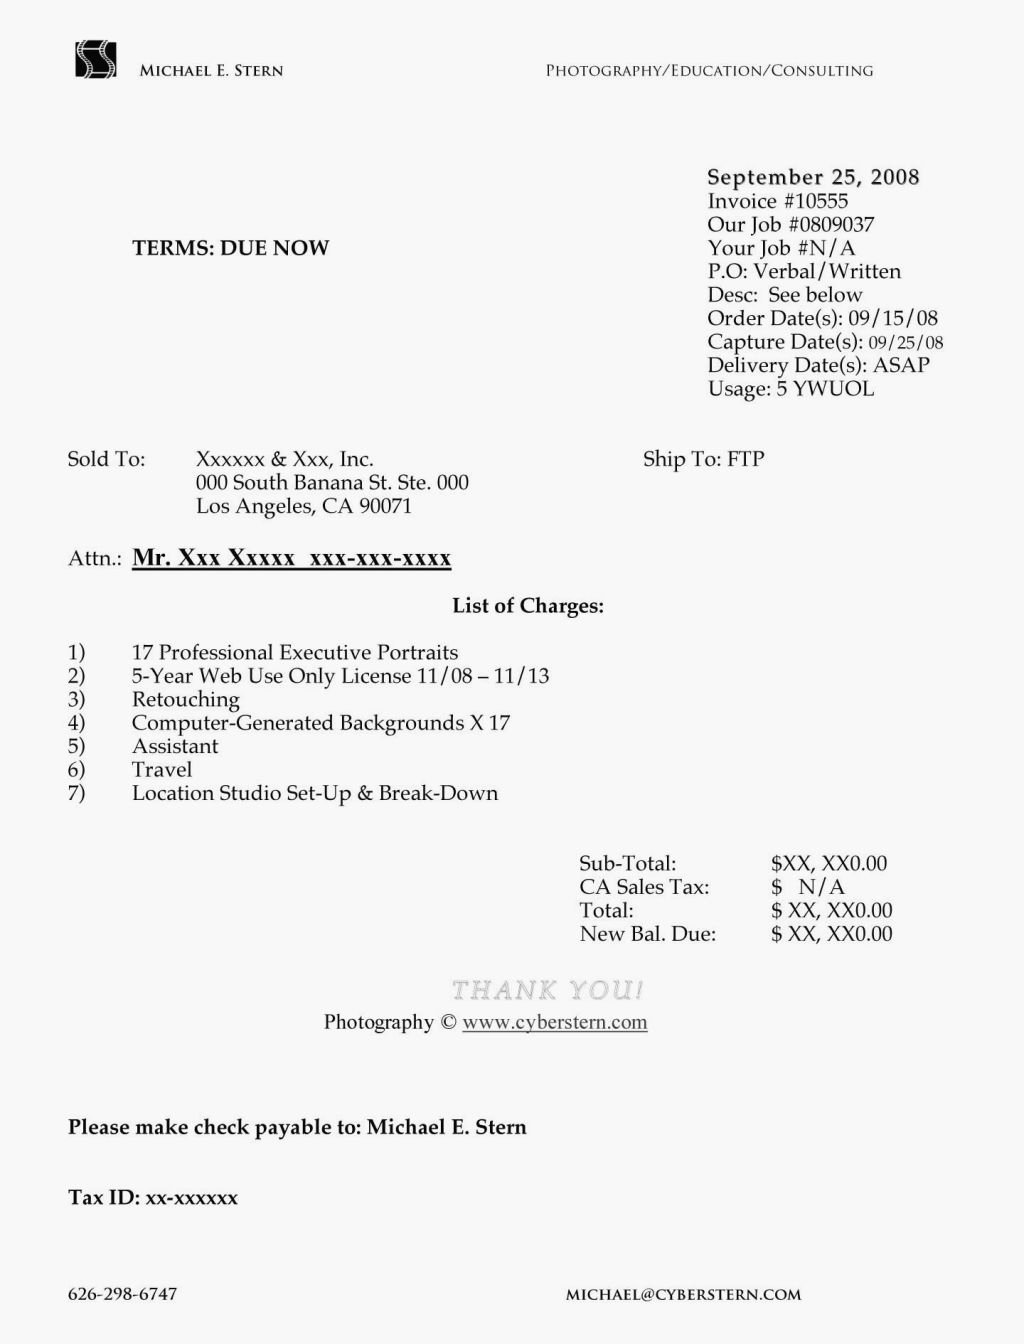 Self Employed Letter Template Best Of 12 Example Of Invoice for Self Employed